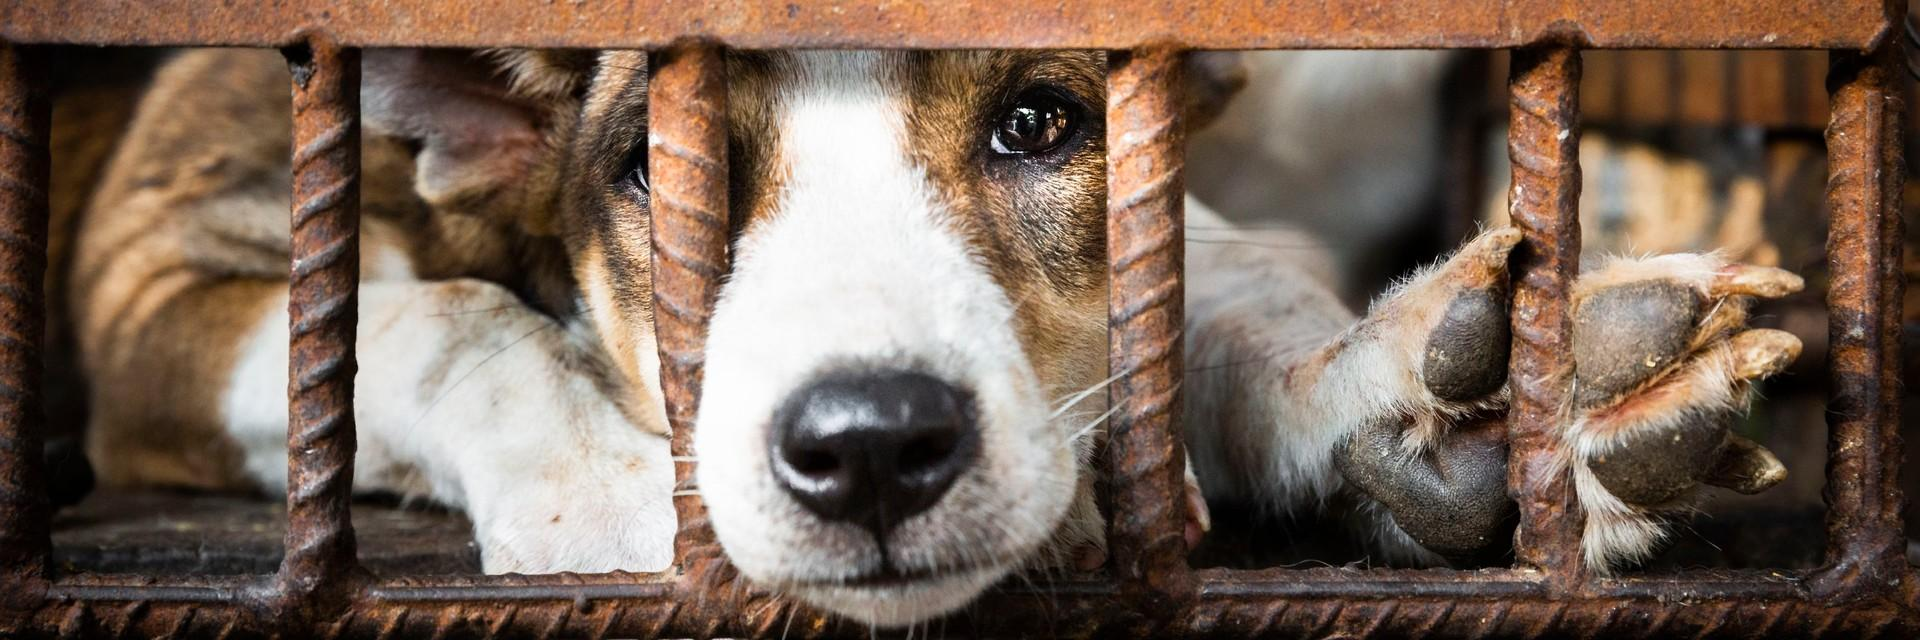 Dog looking through cage in the dog meat trade